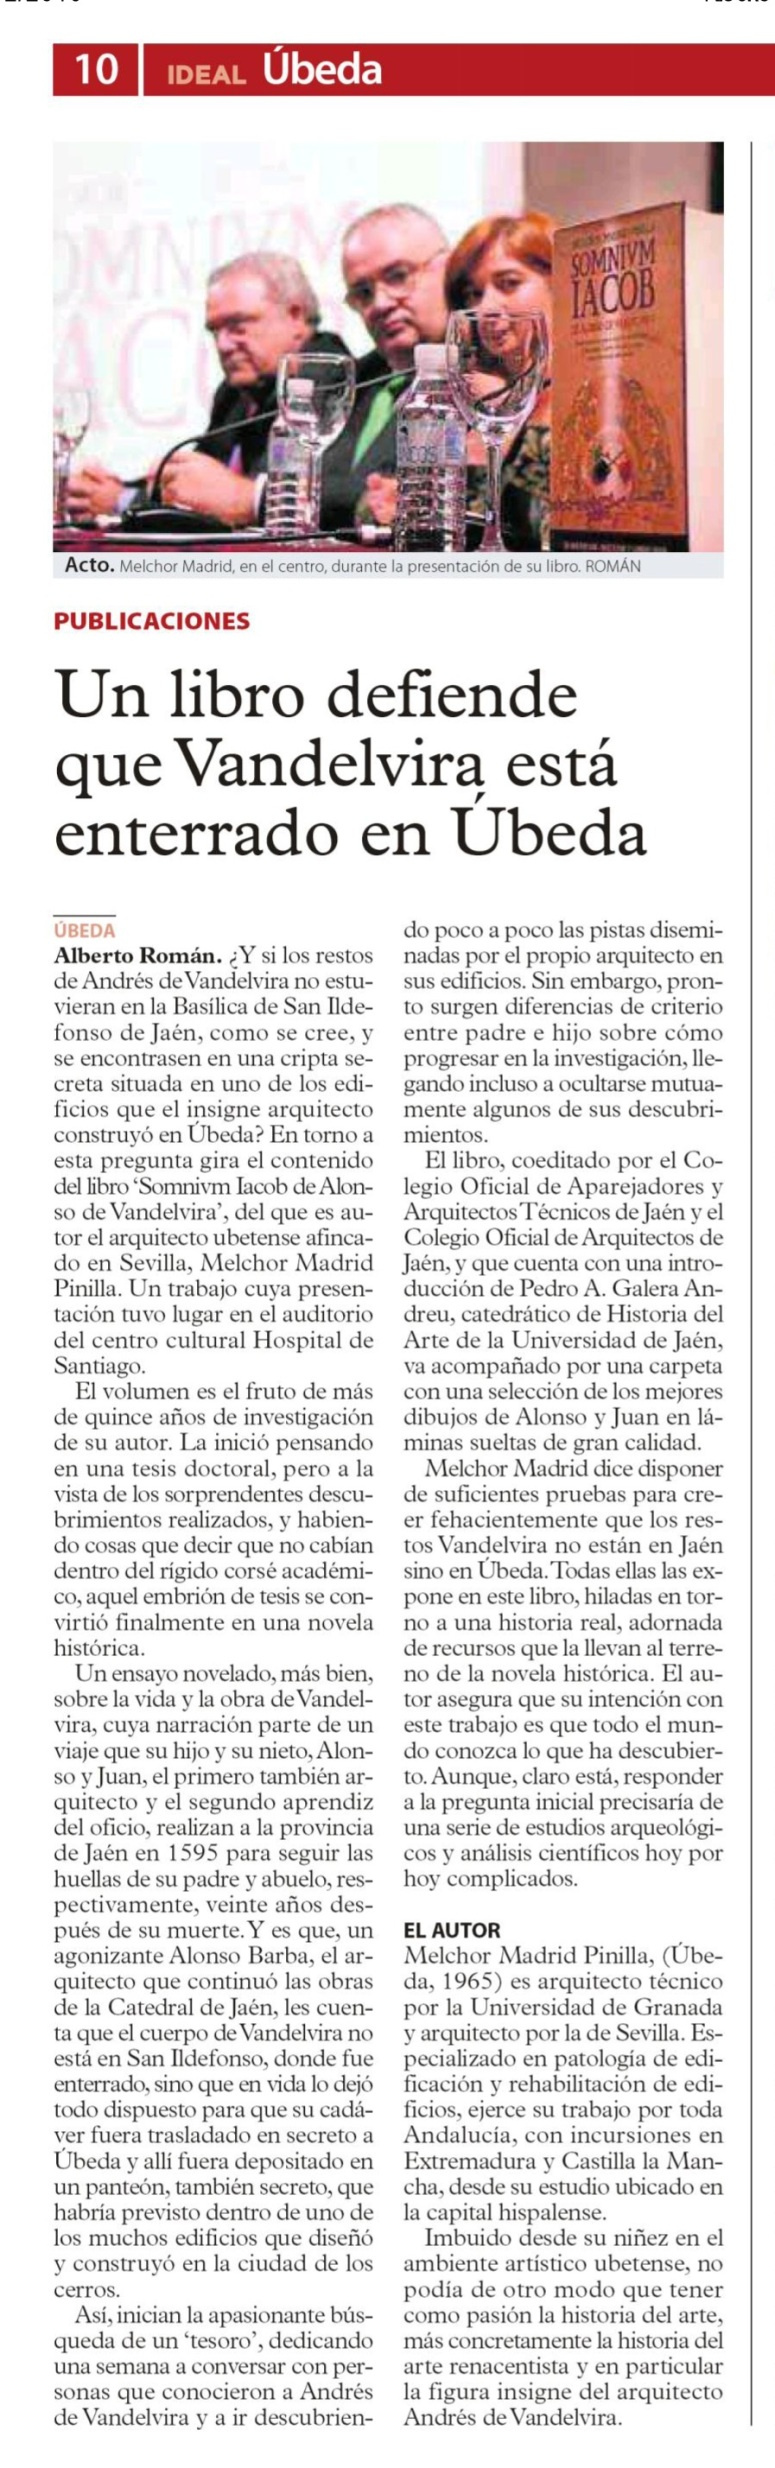 noticia-ideal-ubeda-mensual2